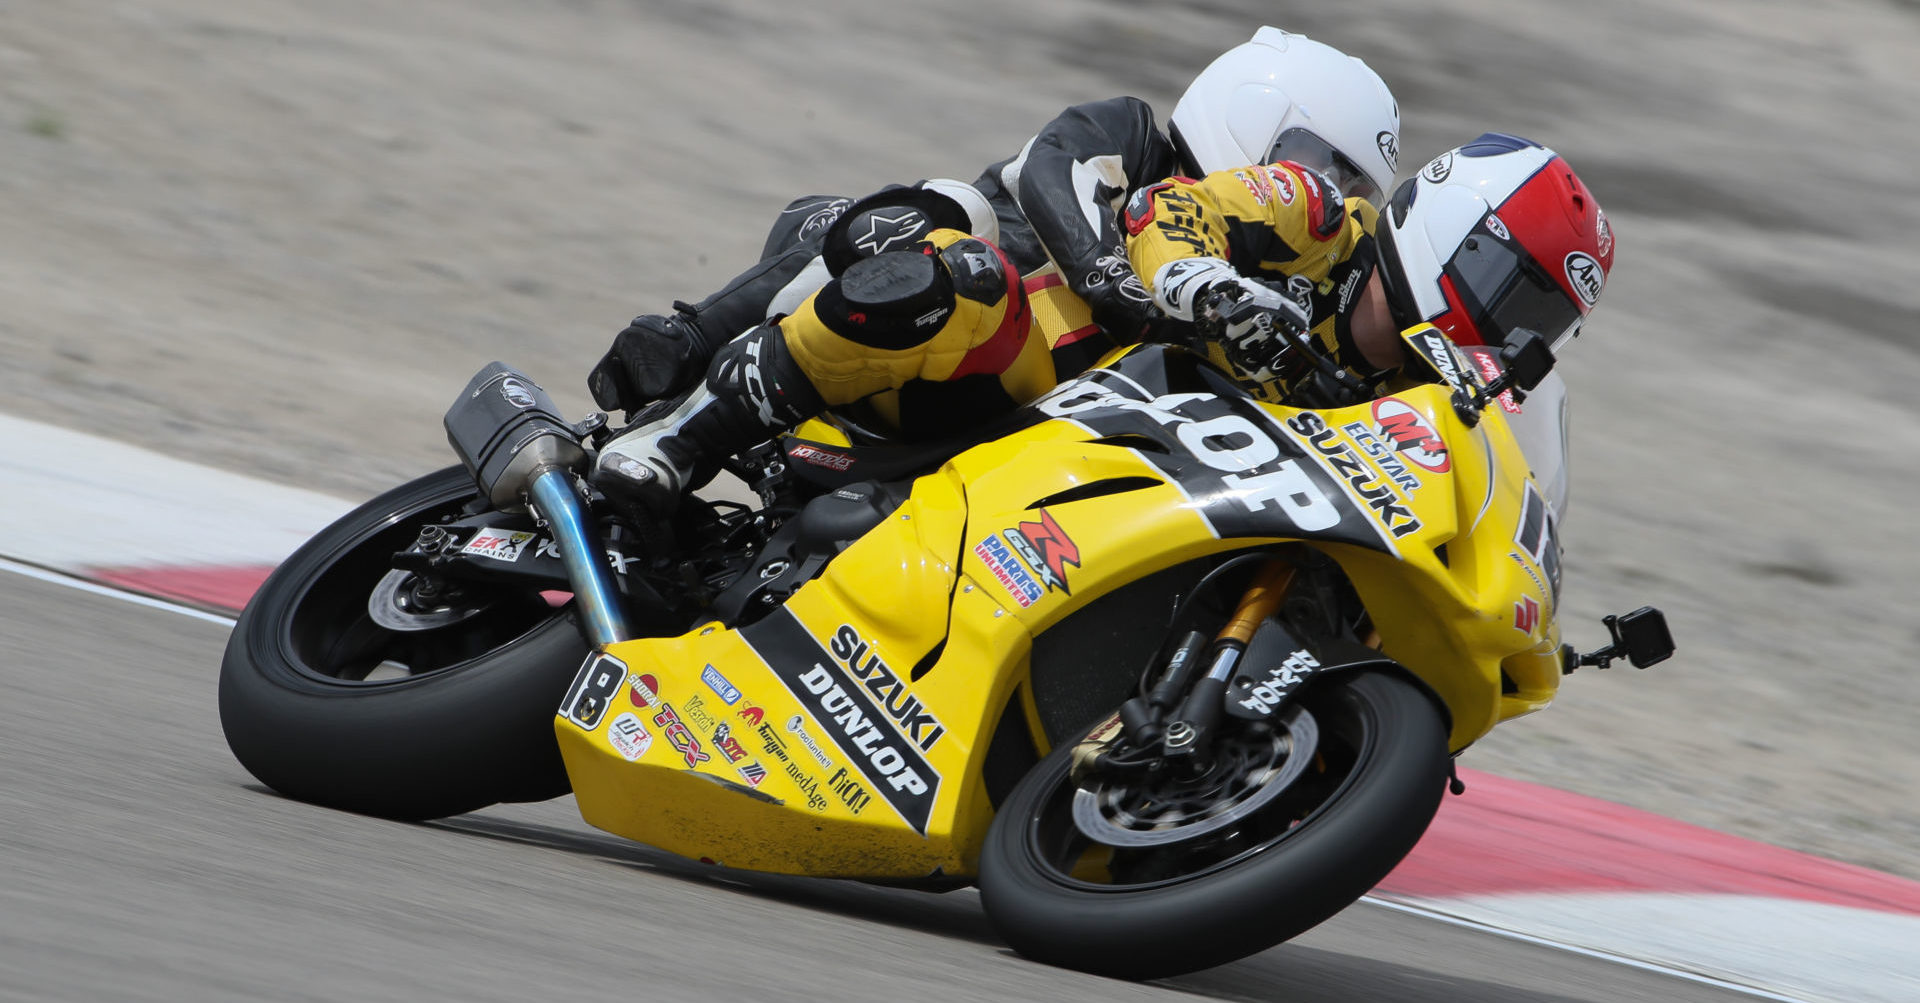 Chris Ulrich pilots the Dunlop M4 Suzuki Two-seat Superbike. Team Hammer has been operating the program for 20 years. Photo by Brian J Nelson.